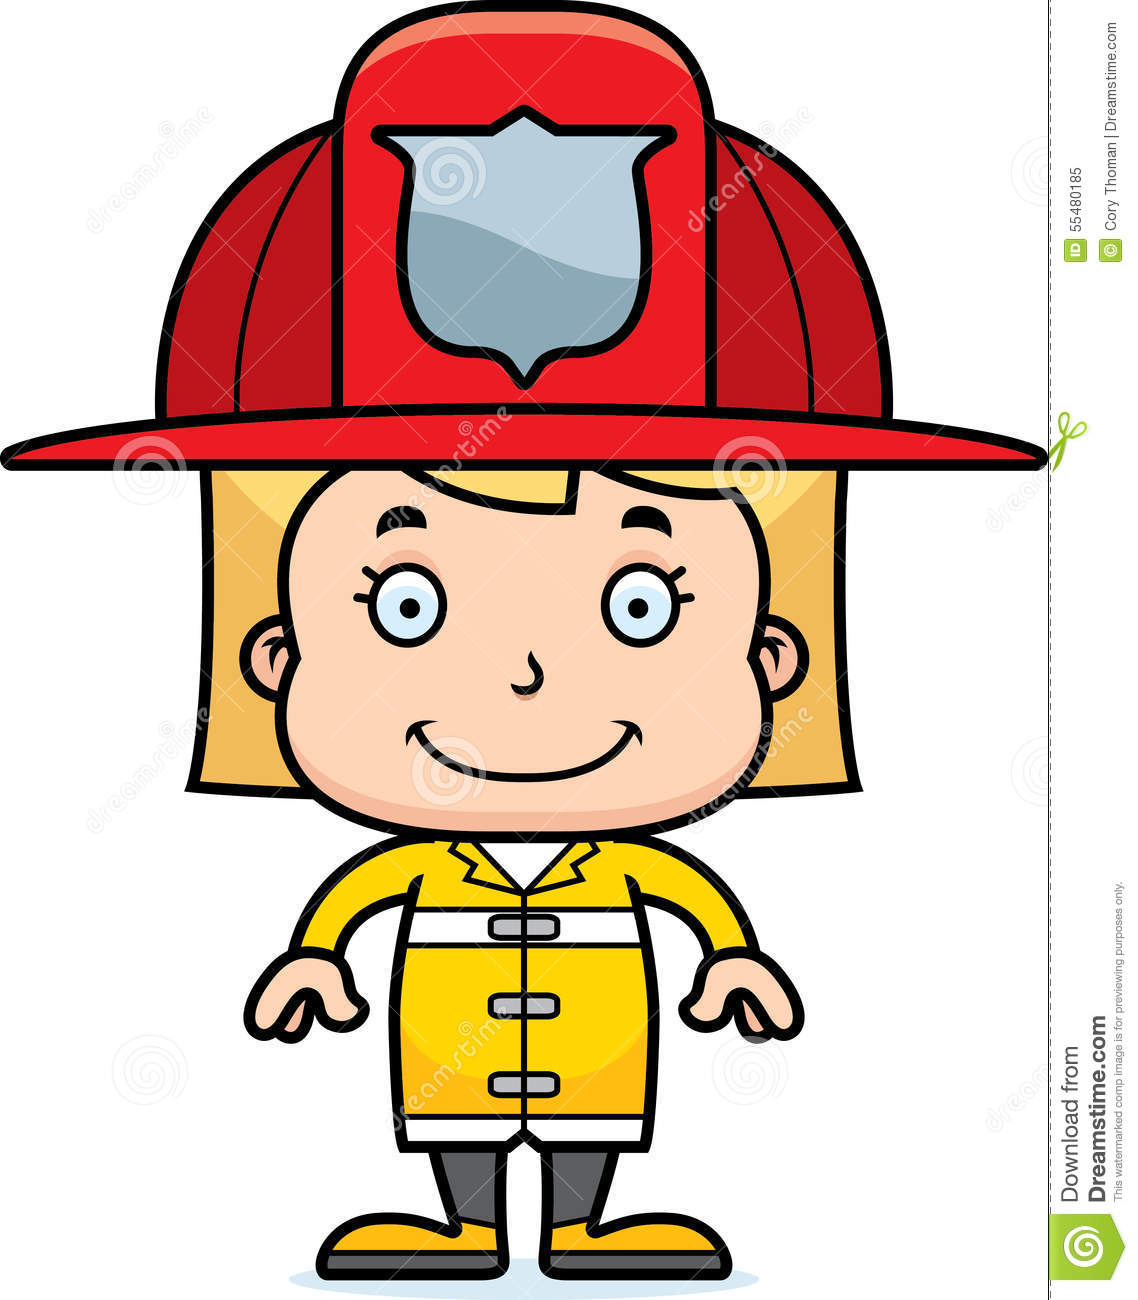 This firefighter chick is slide down my pole 8